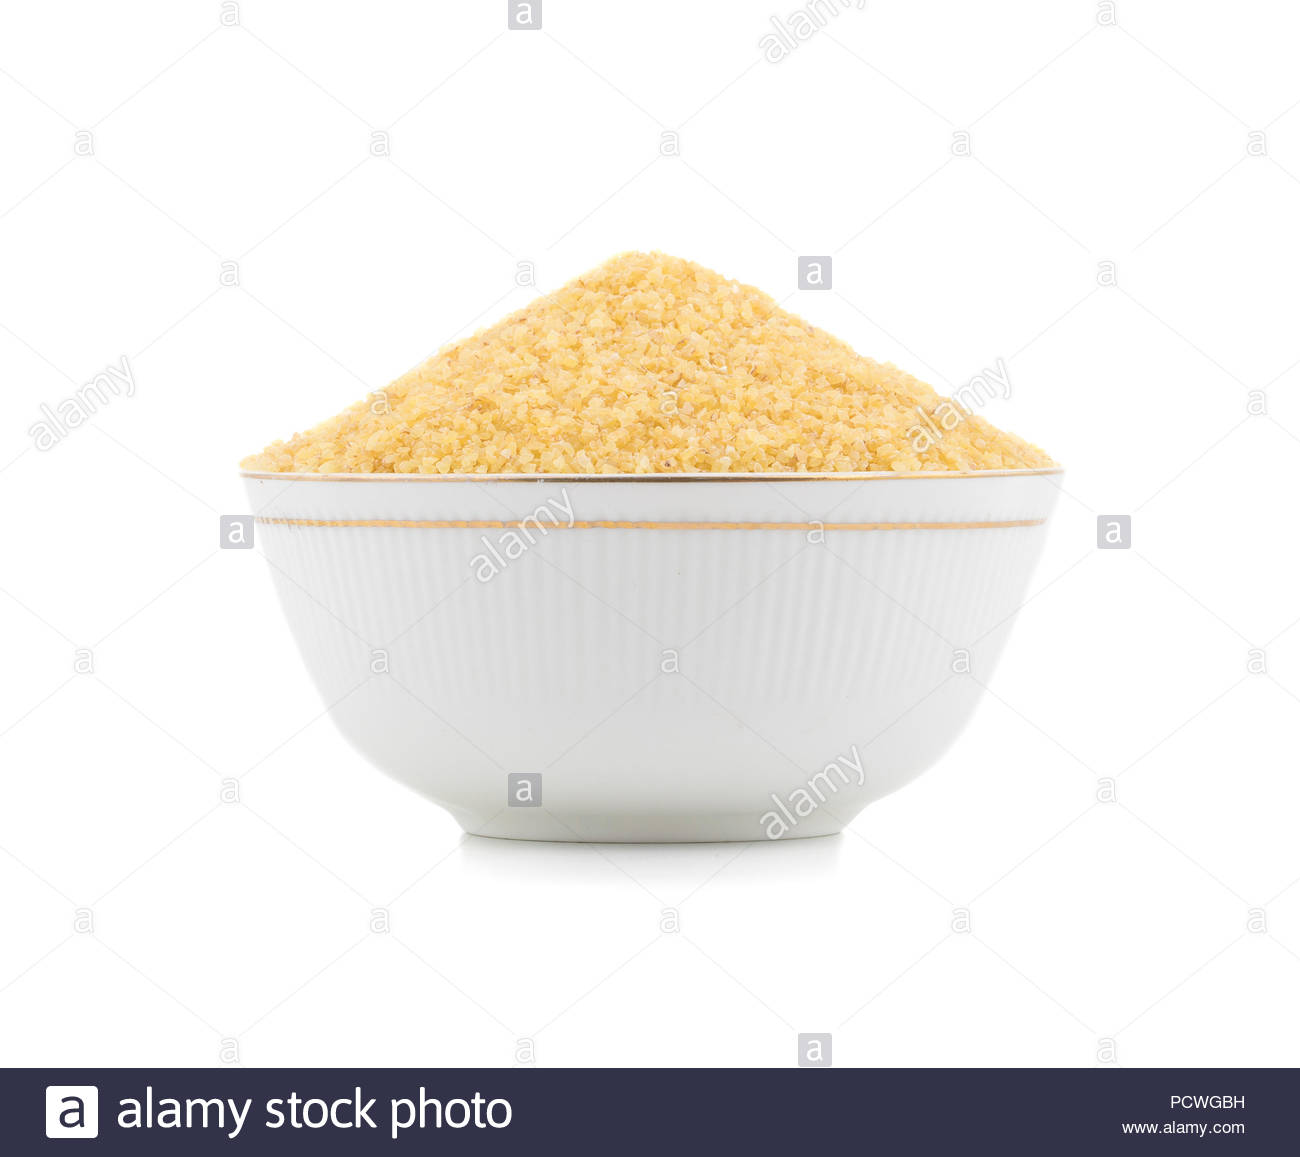 Uncooked cereal food, most often made from groats of durum wheat. Also called burghul - Stock Image